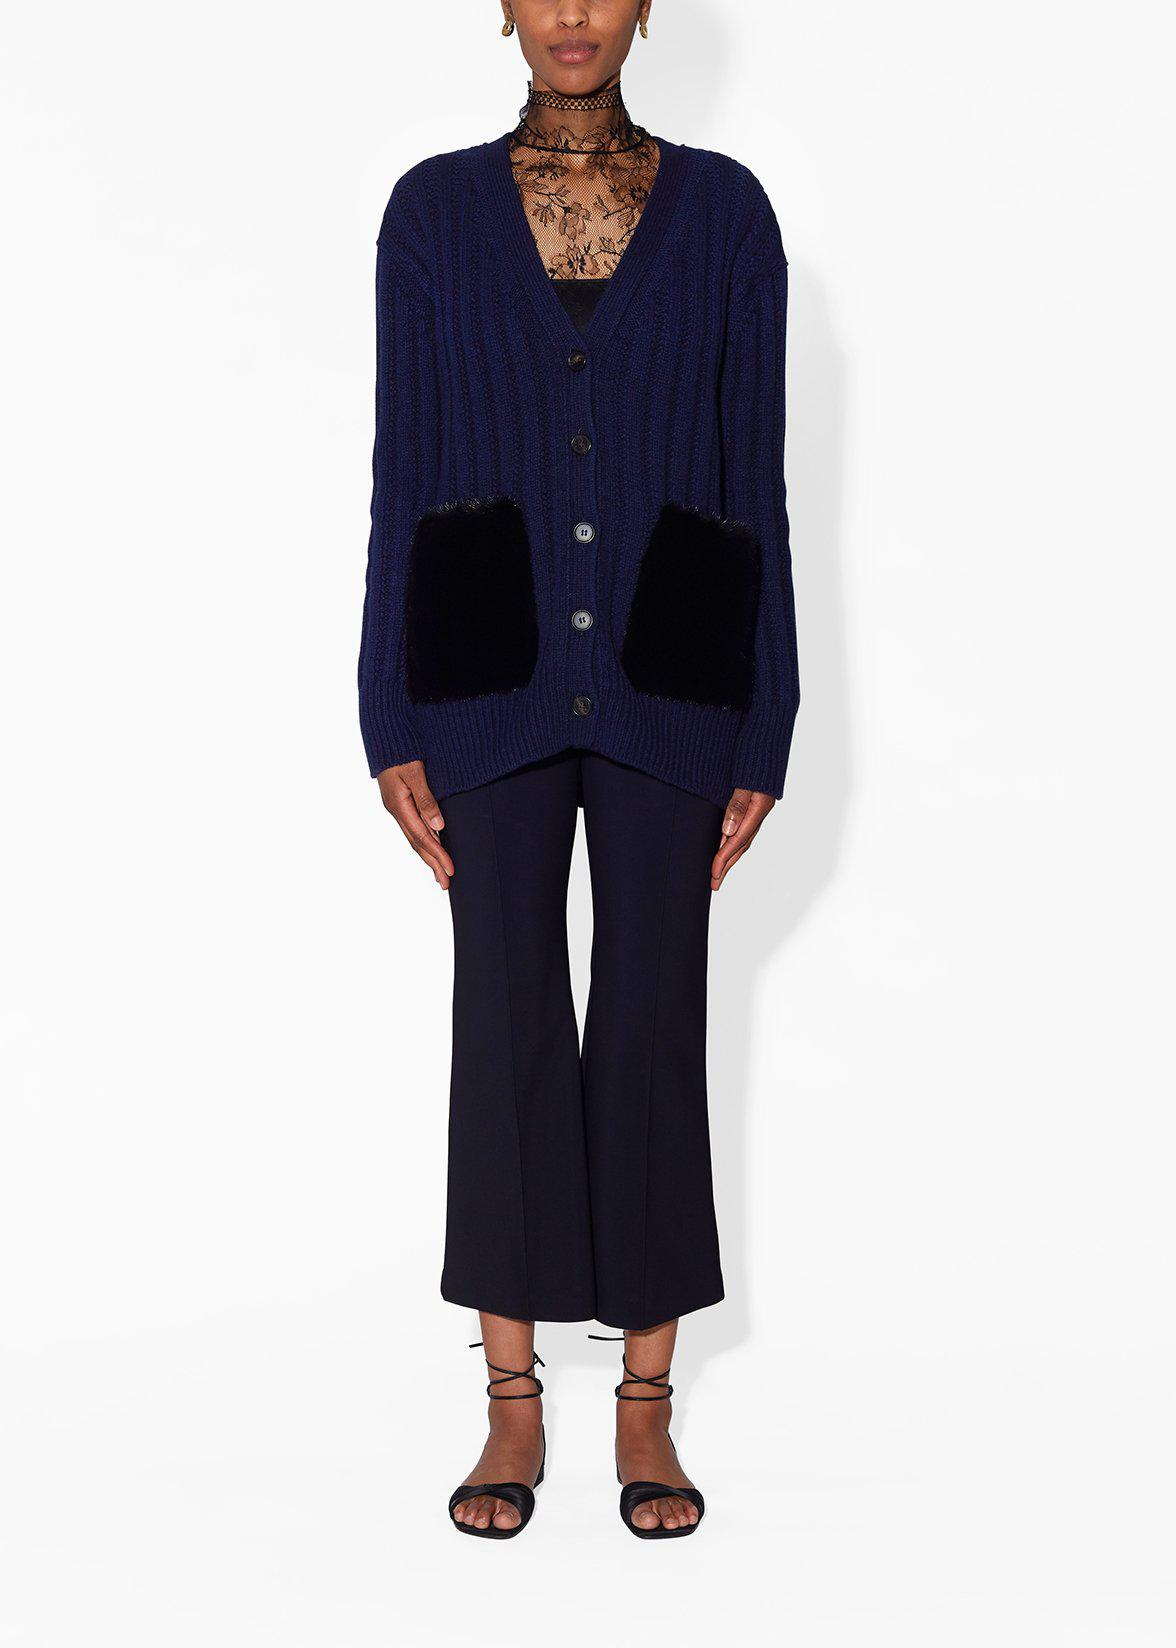 CARDIGAN IN WOOL CASHMERE WITH MINK POCKETS